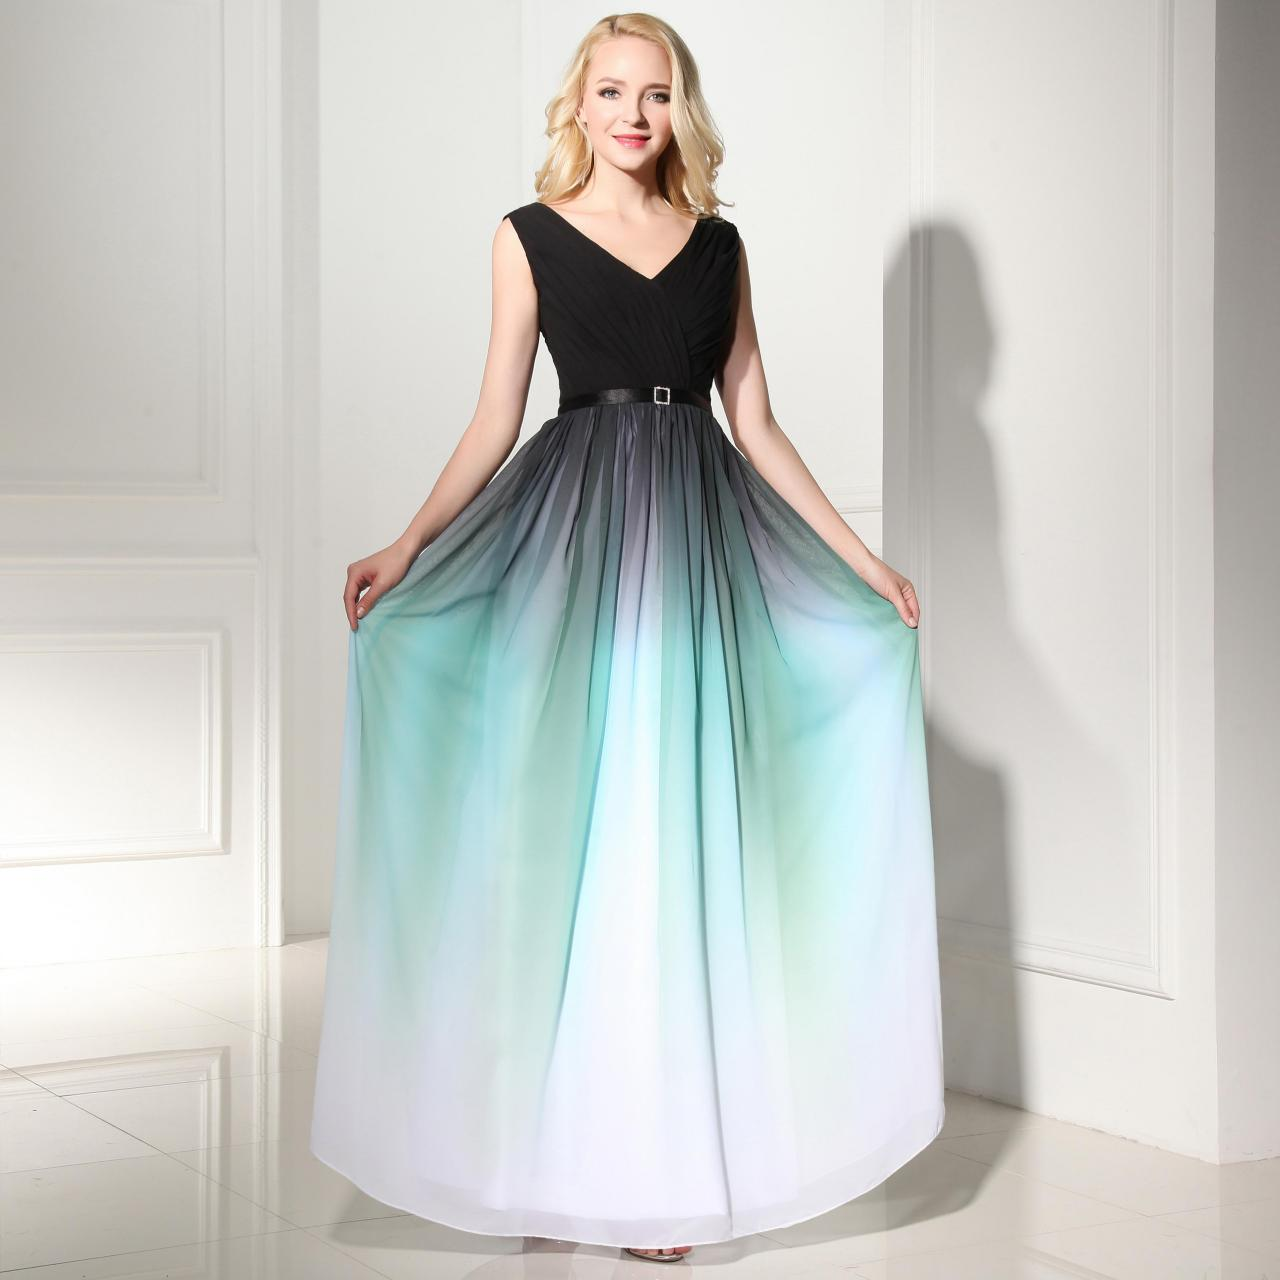 ccaabe1493d Discount Gradient Prom Dresses